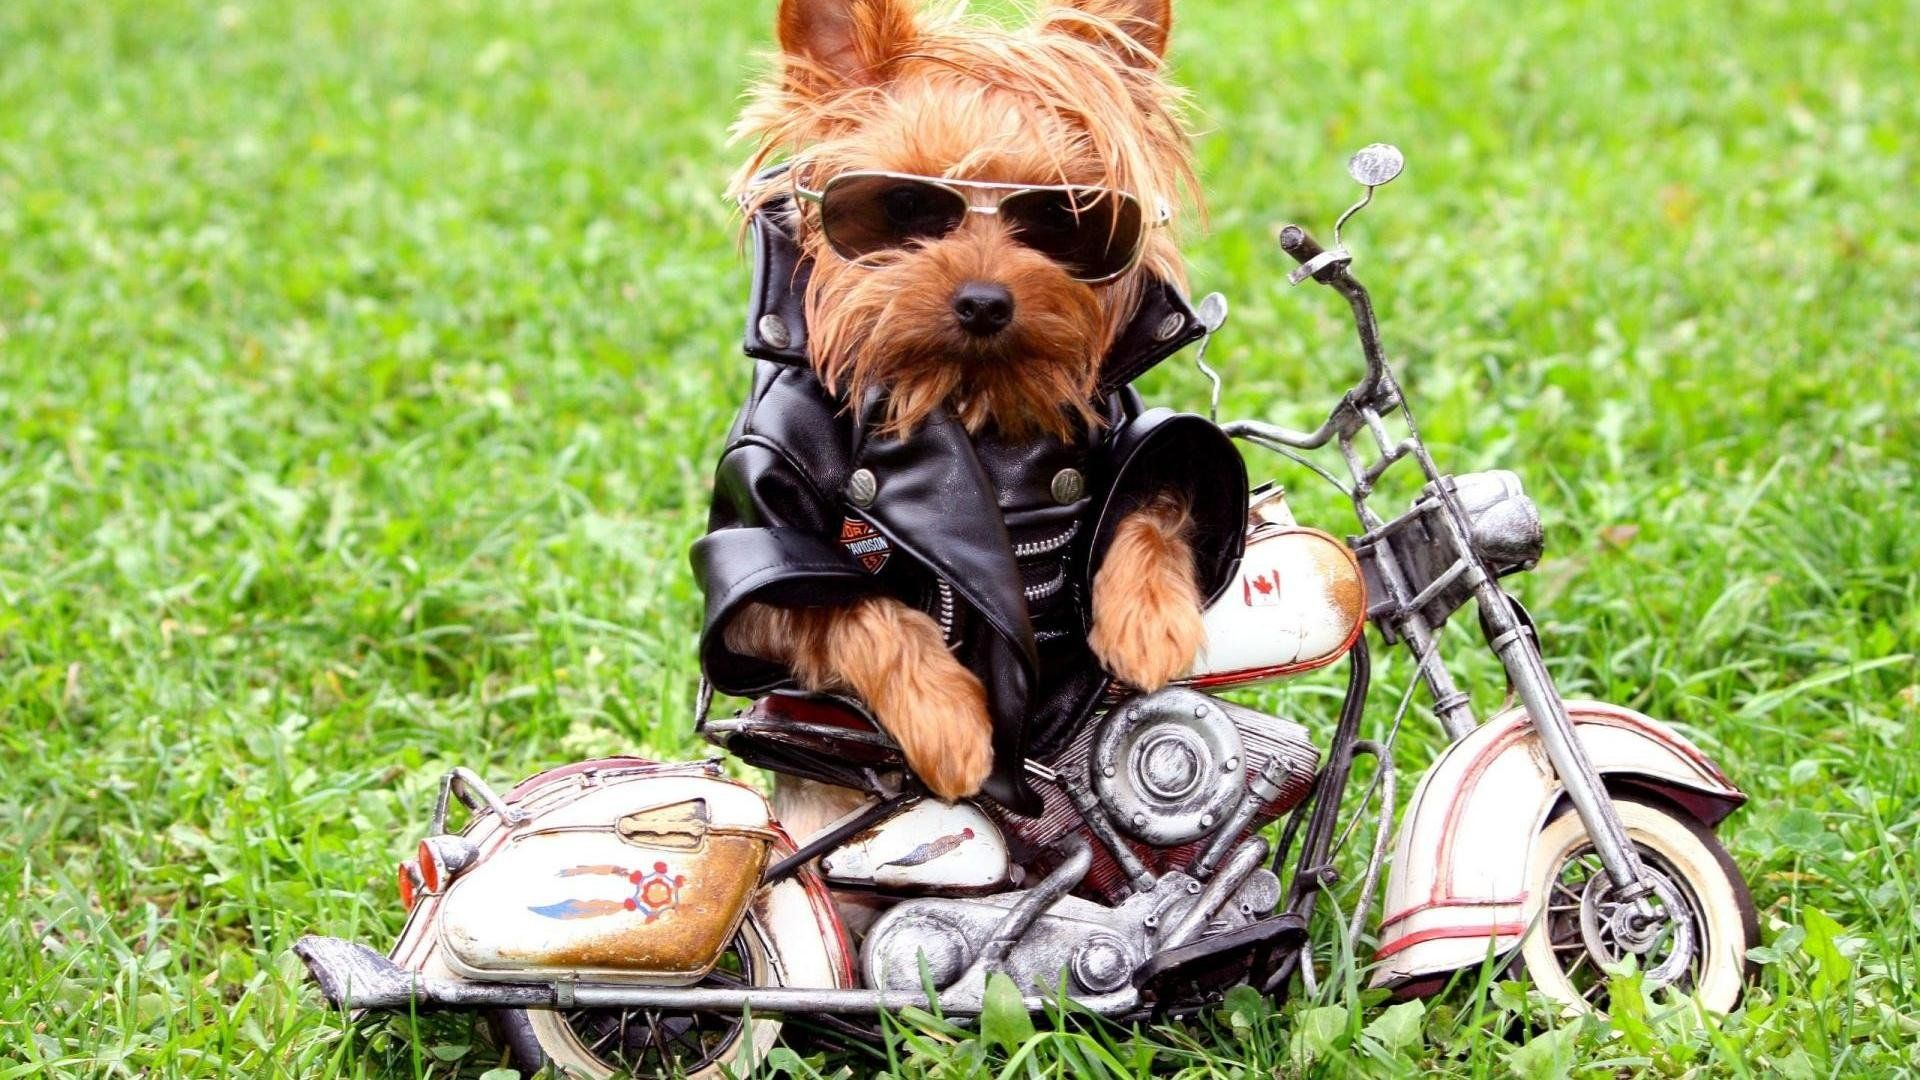 Cute Cool Backgrounds 4 Biker Dog Cute Funny Animals Dog Pictures